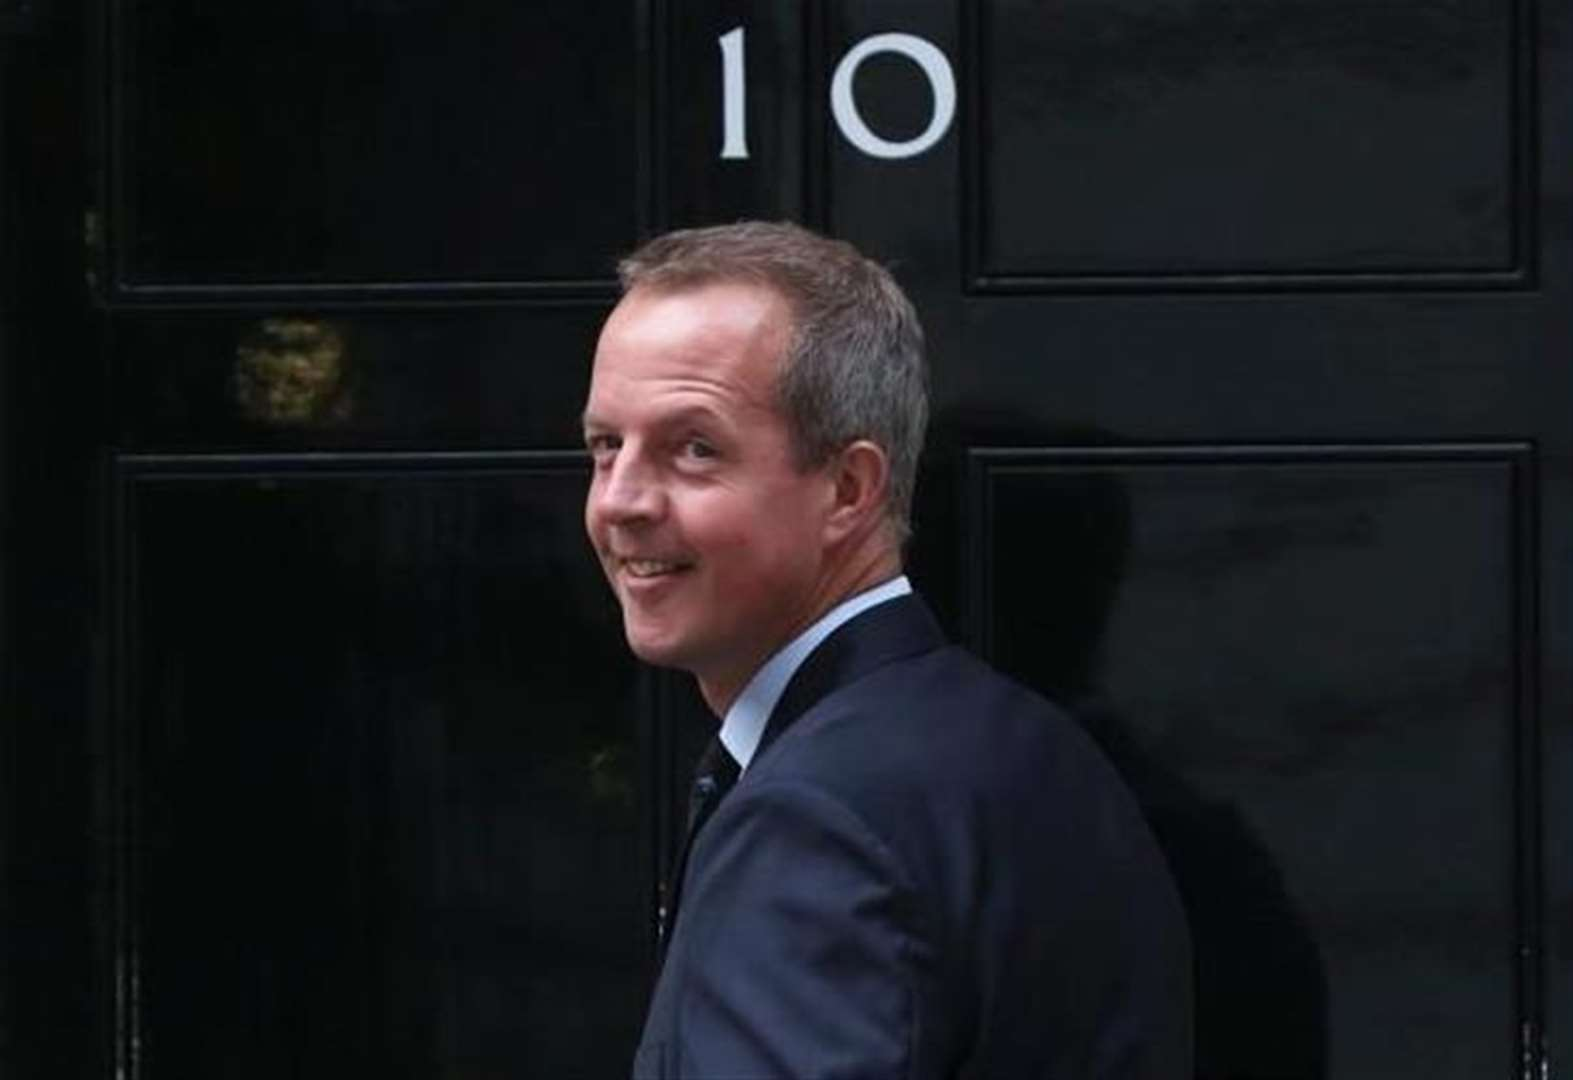 Grantham MP Nick Boles says quitting Tories and standing as an Independent will be 'ratting' on the voters